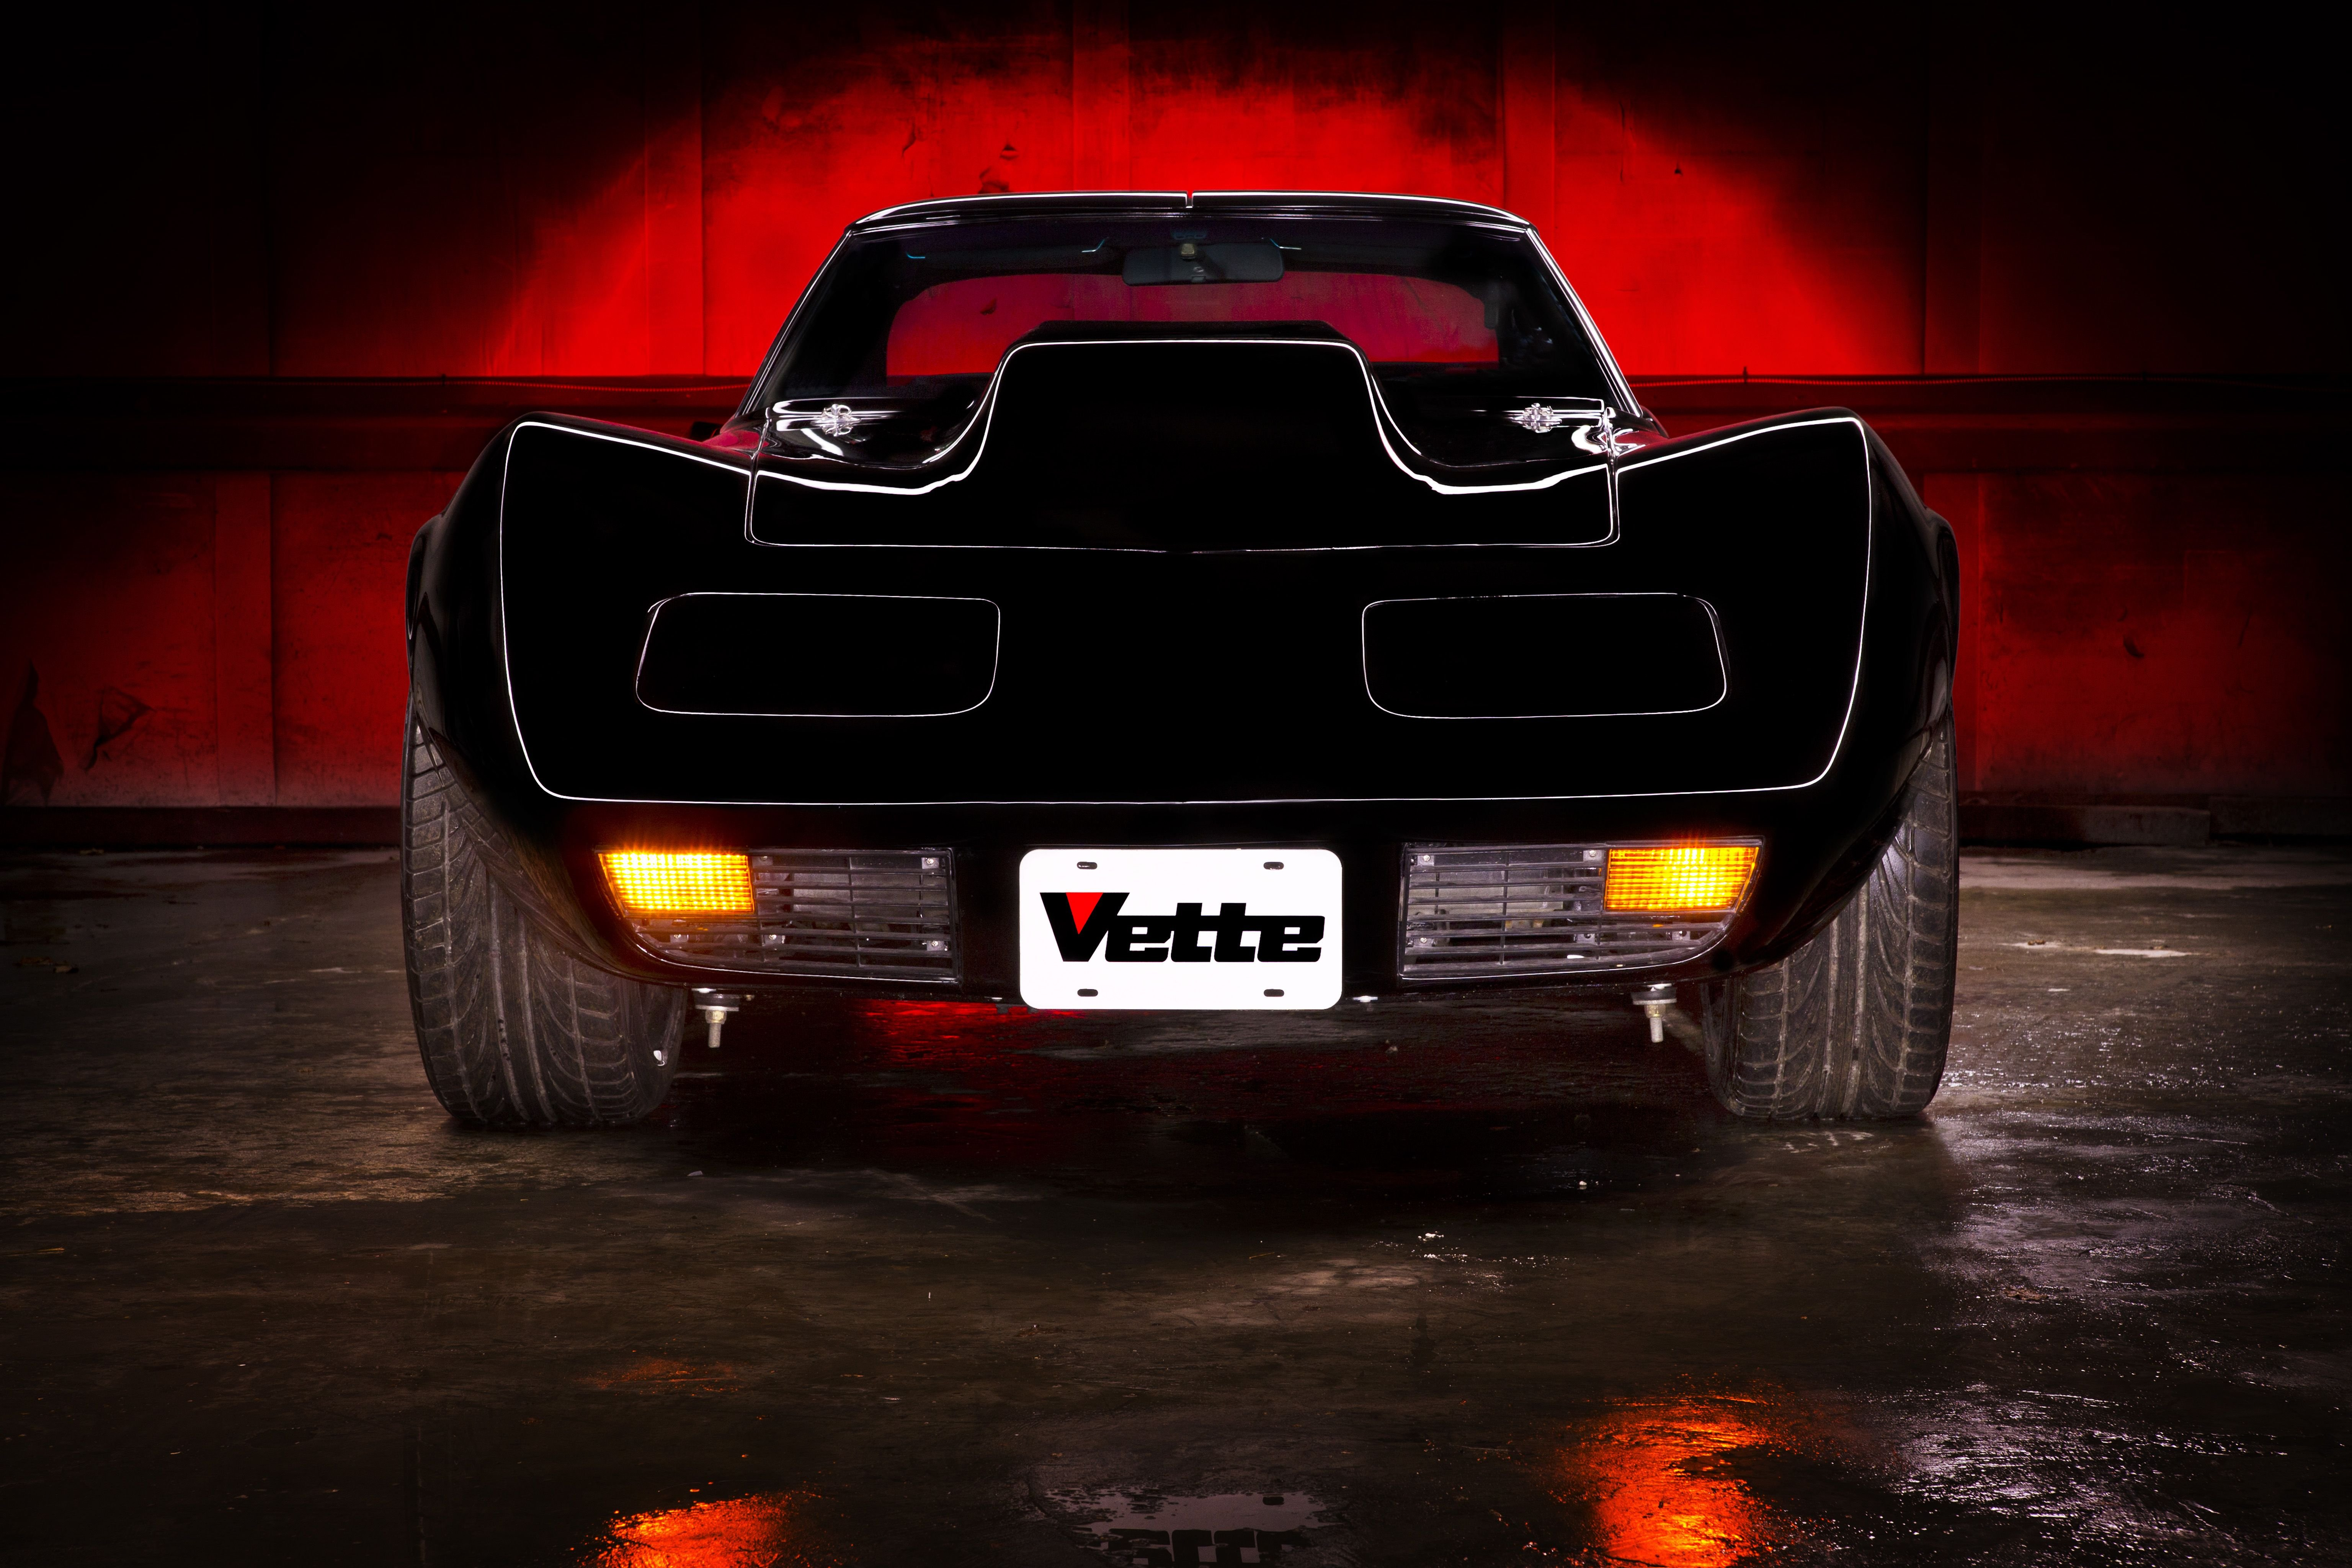 1976 Chevrolet Corvette C3 Cars Black Modified Wallpaper